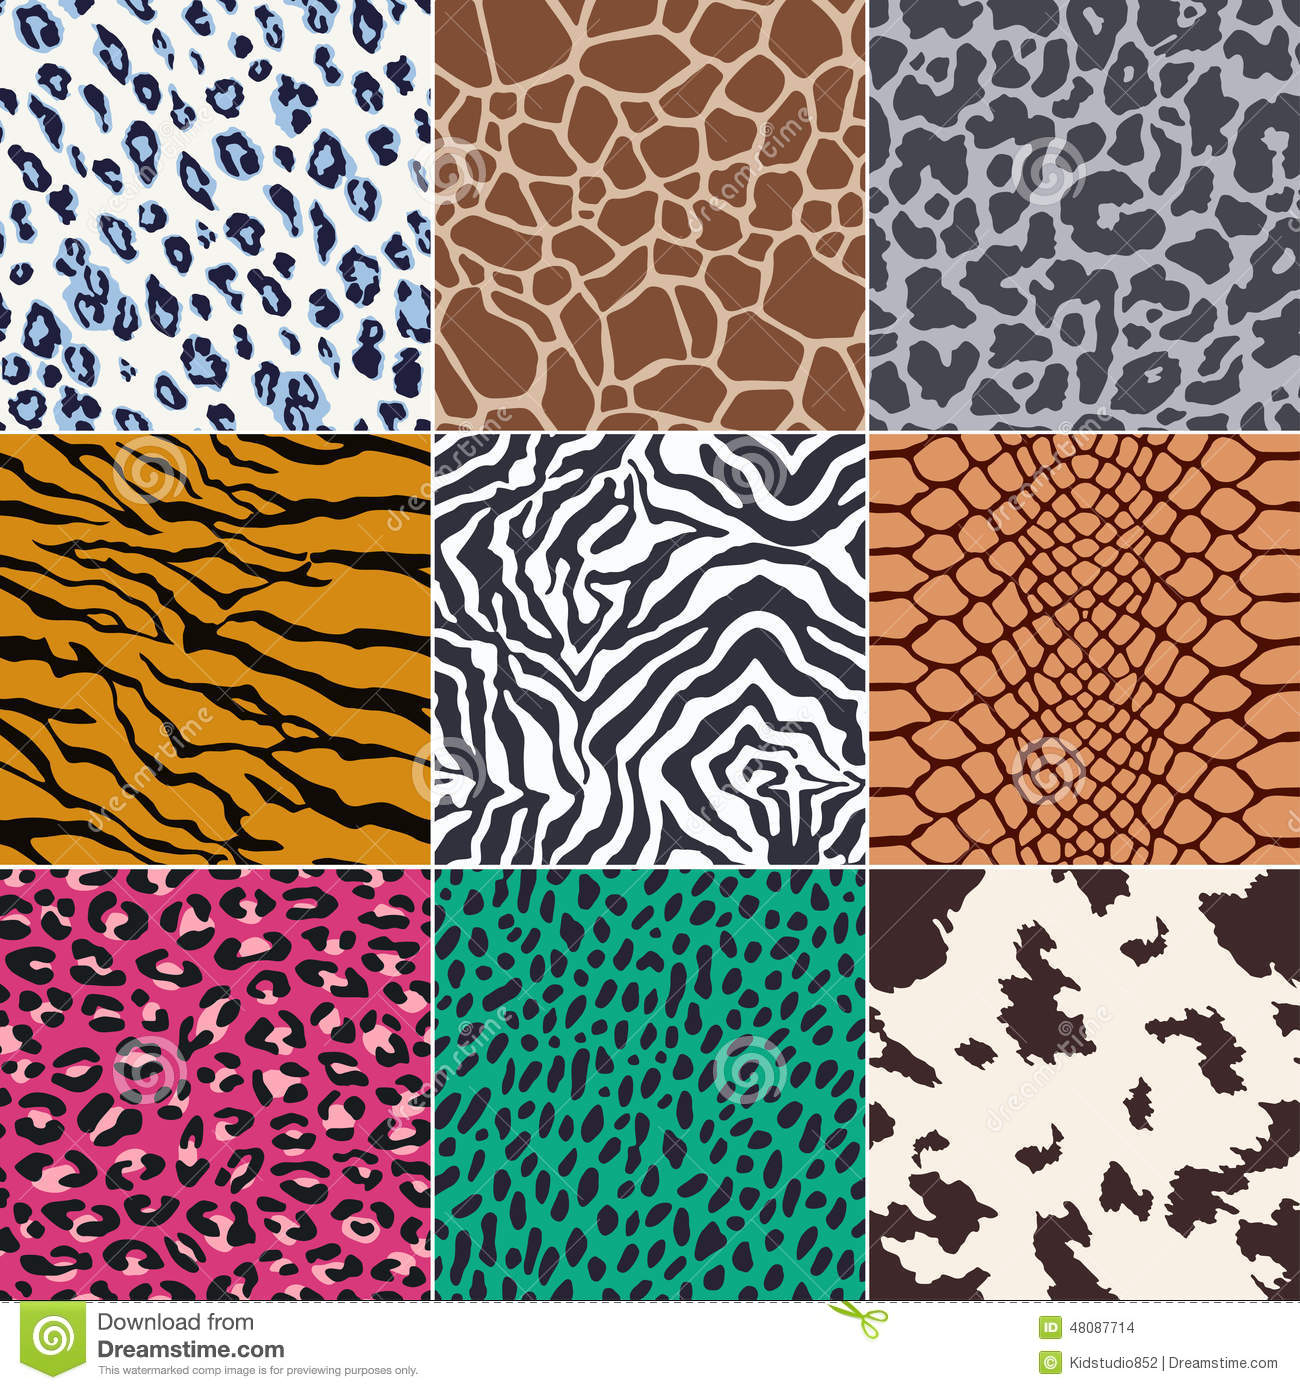 animal skin patterns seamless - photo #26